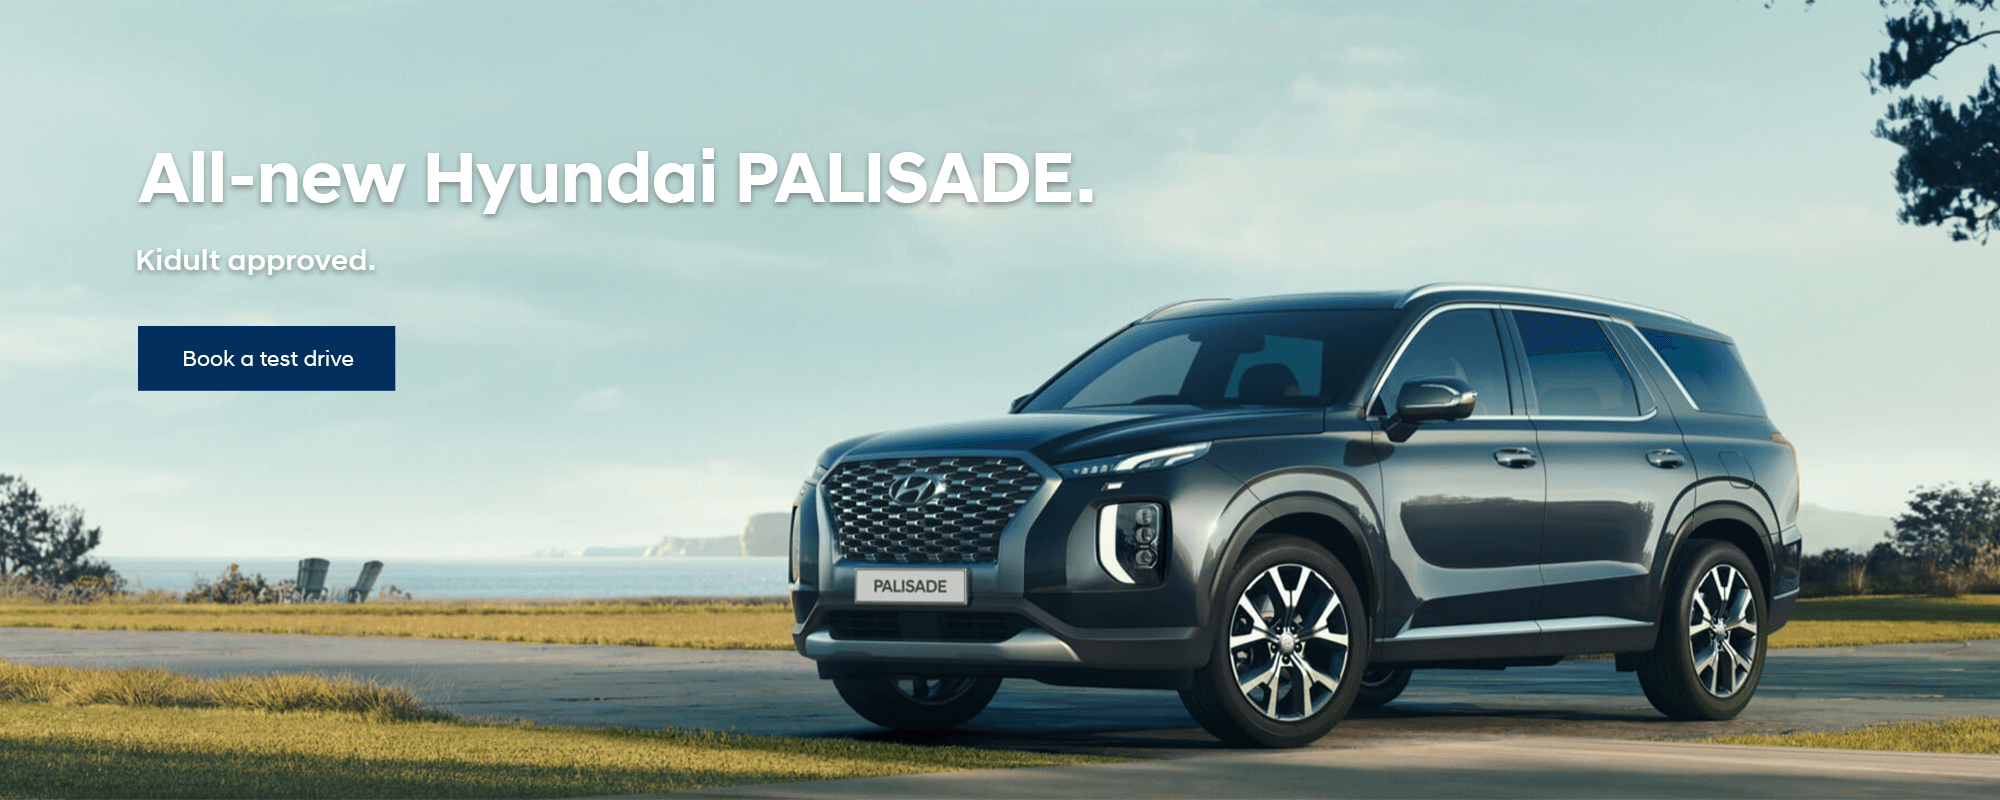 The All-New Palisade. Kidult approved!